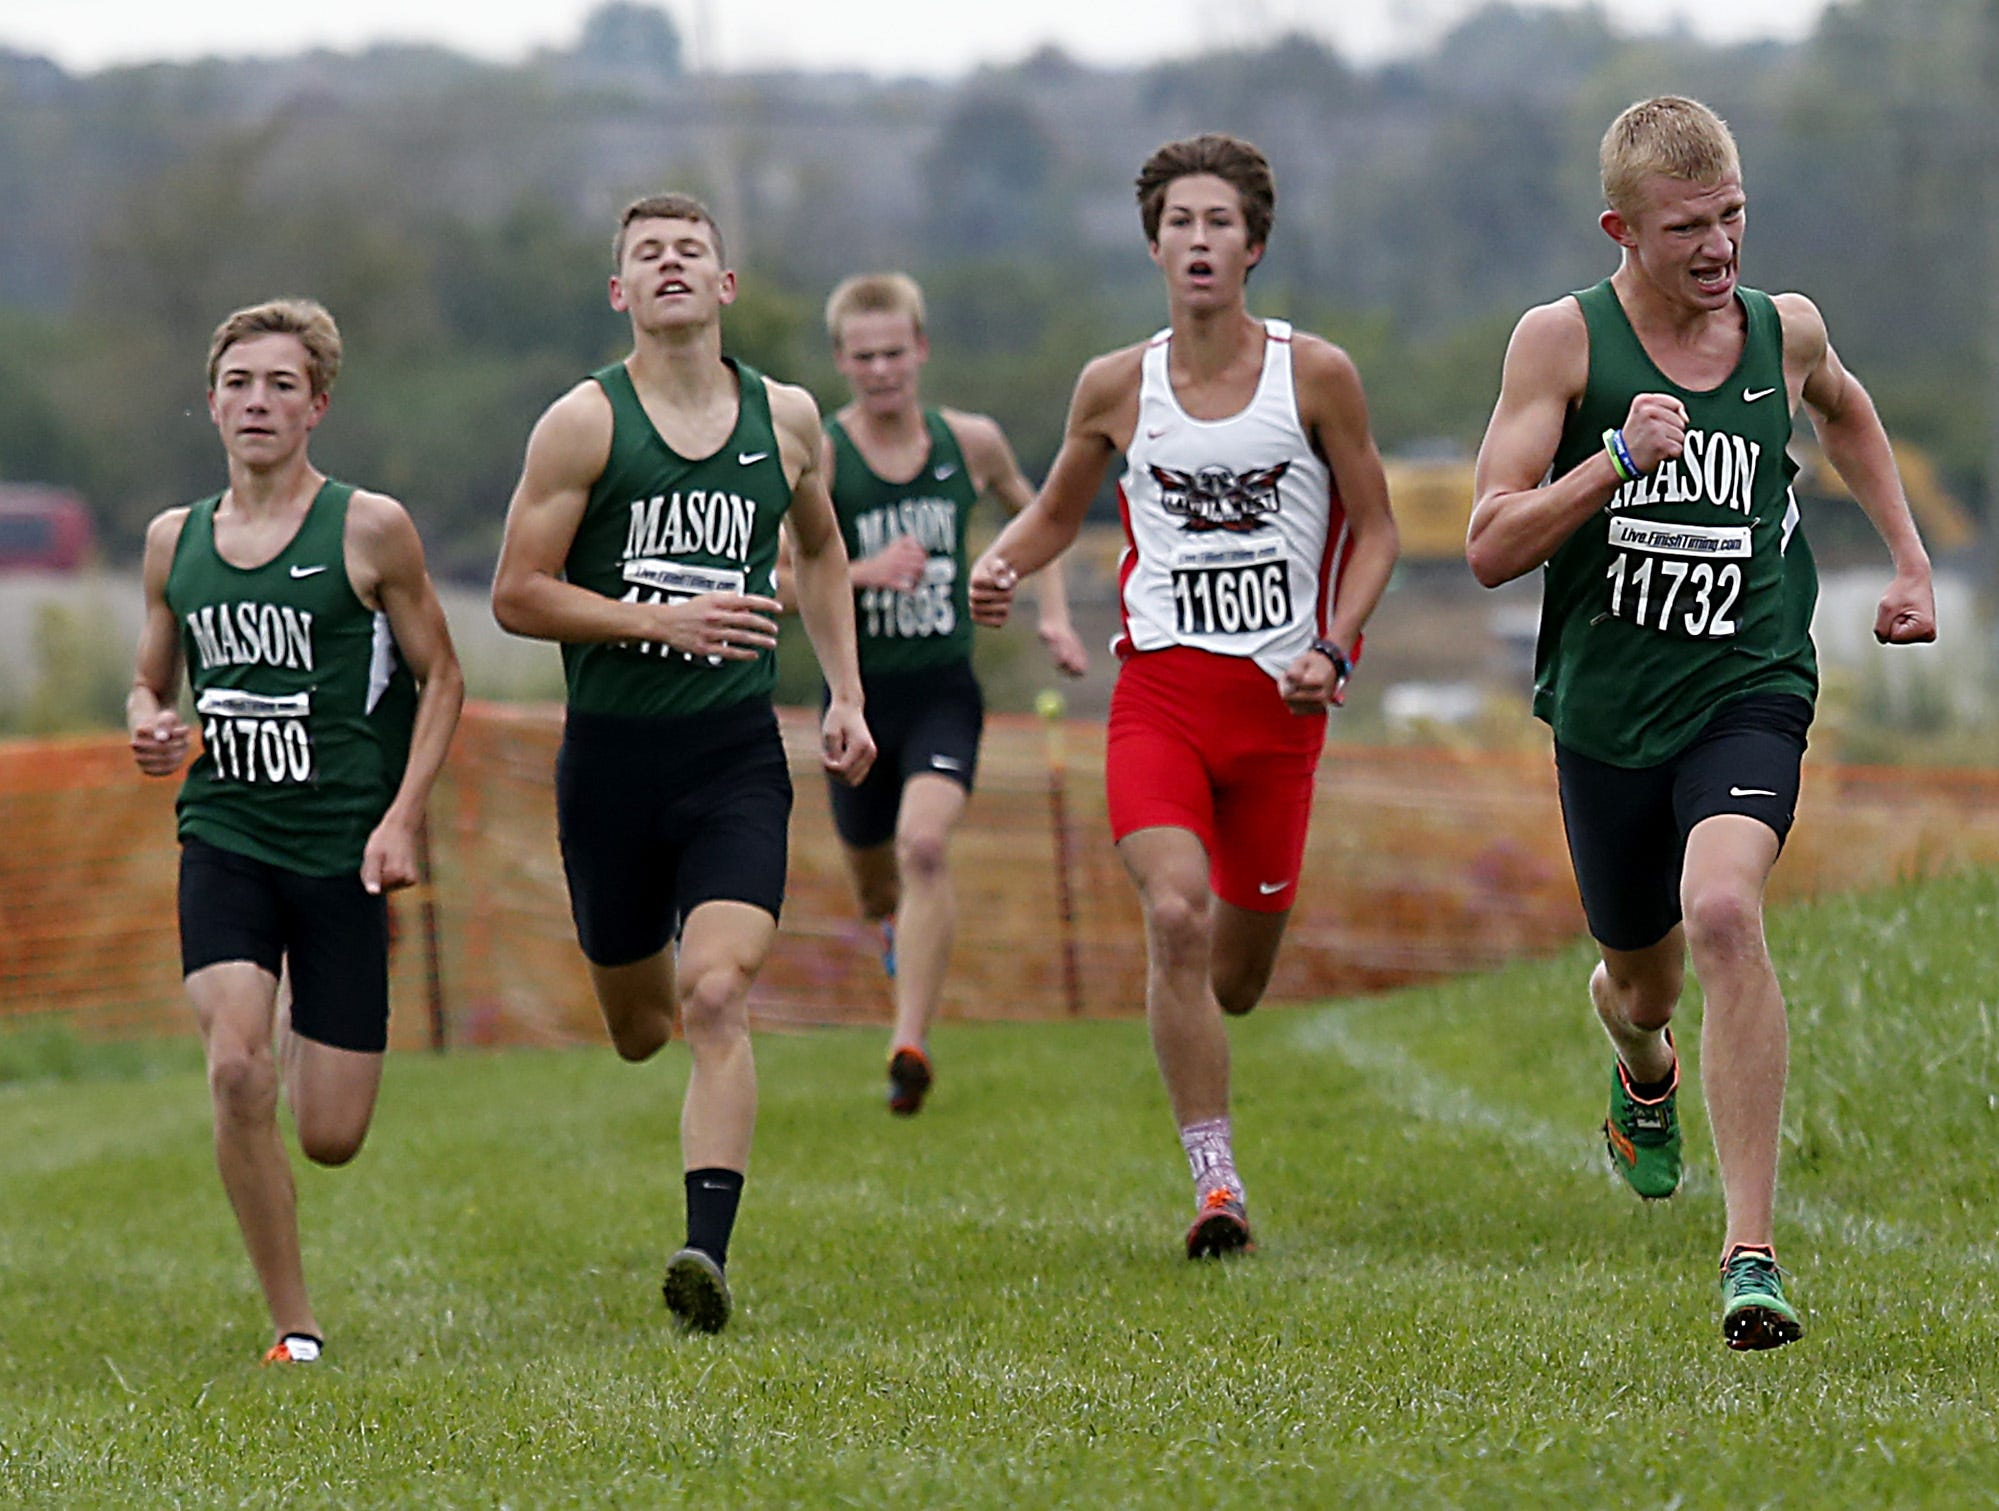 The Mason boys finished first in team points during the Greater Miami Conference Girls and Boys Cross Country Championships at Voice of America Park in West Chester Saturday, Oct. 13, 2018.